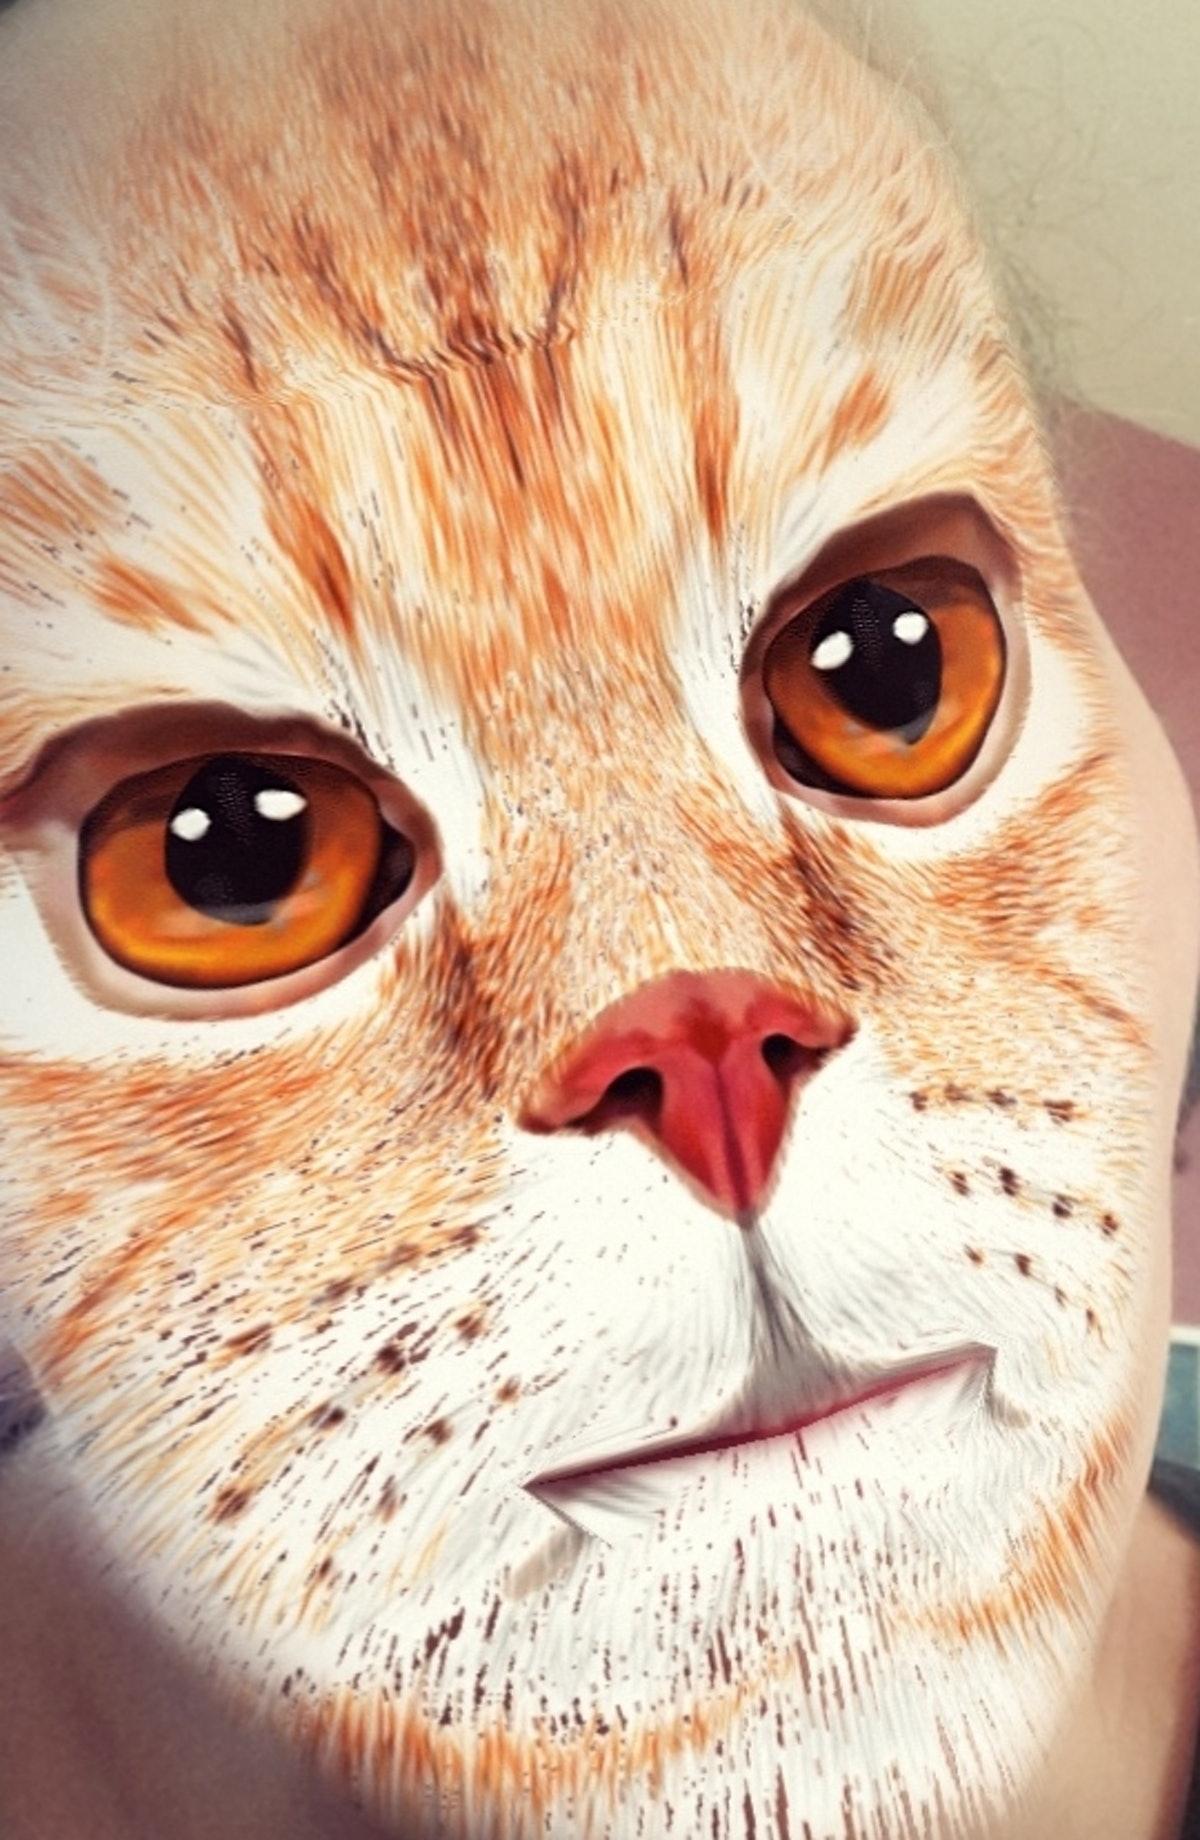 The best cat face filters on Snapchat will make you LOL.